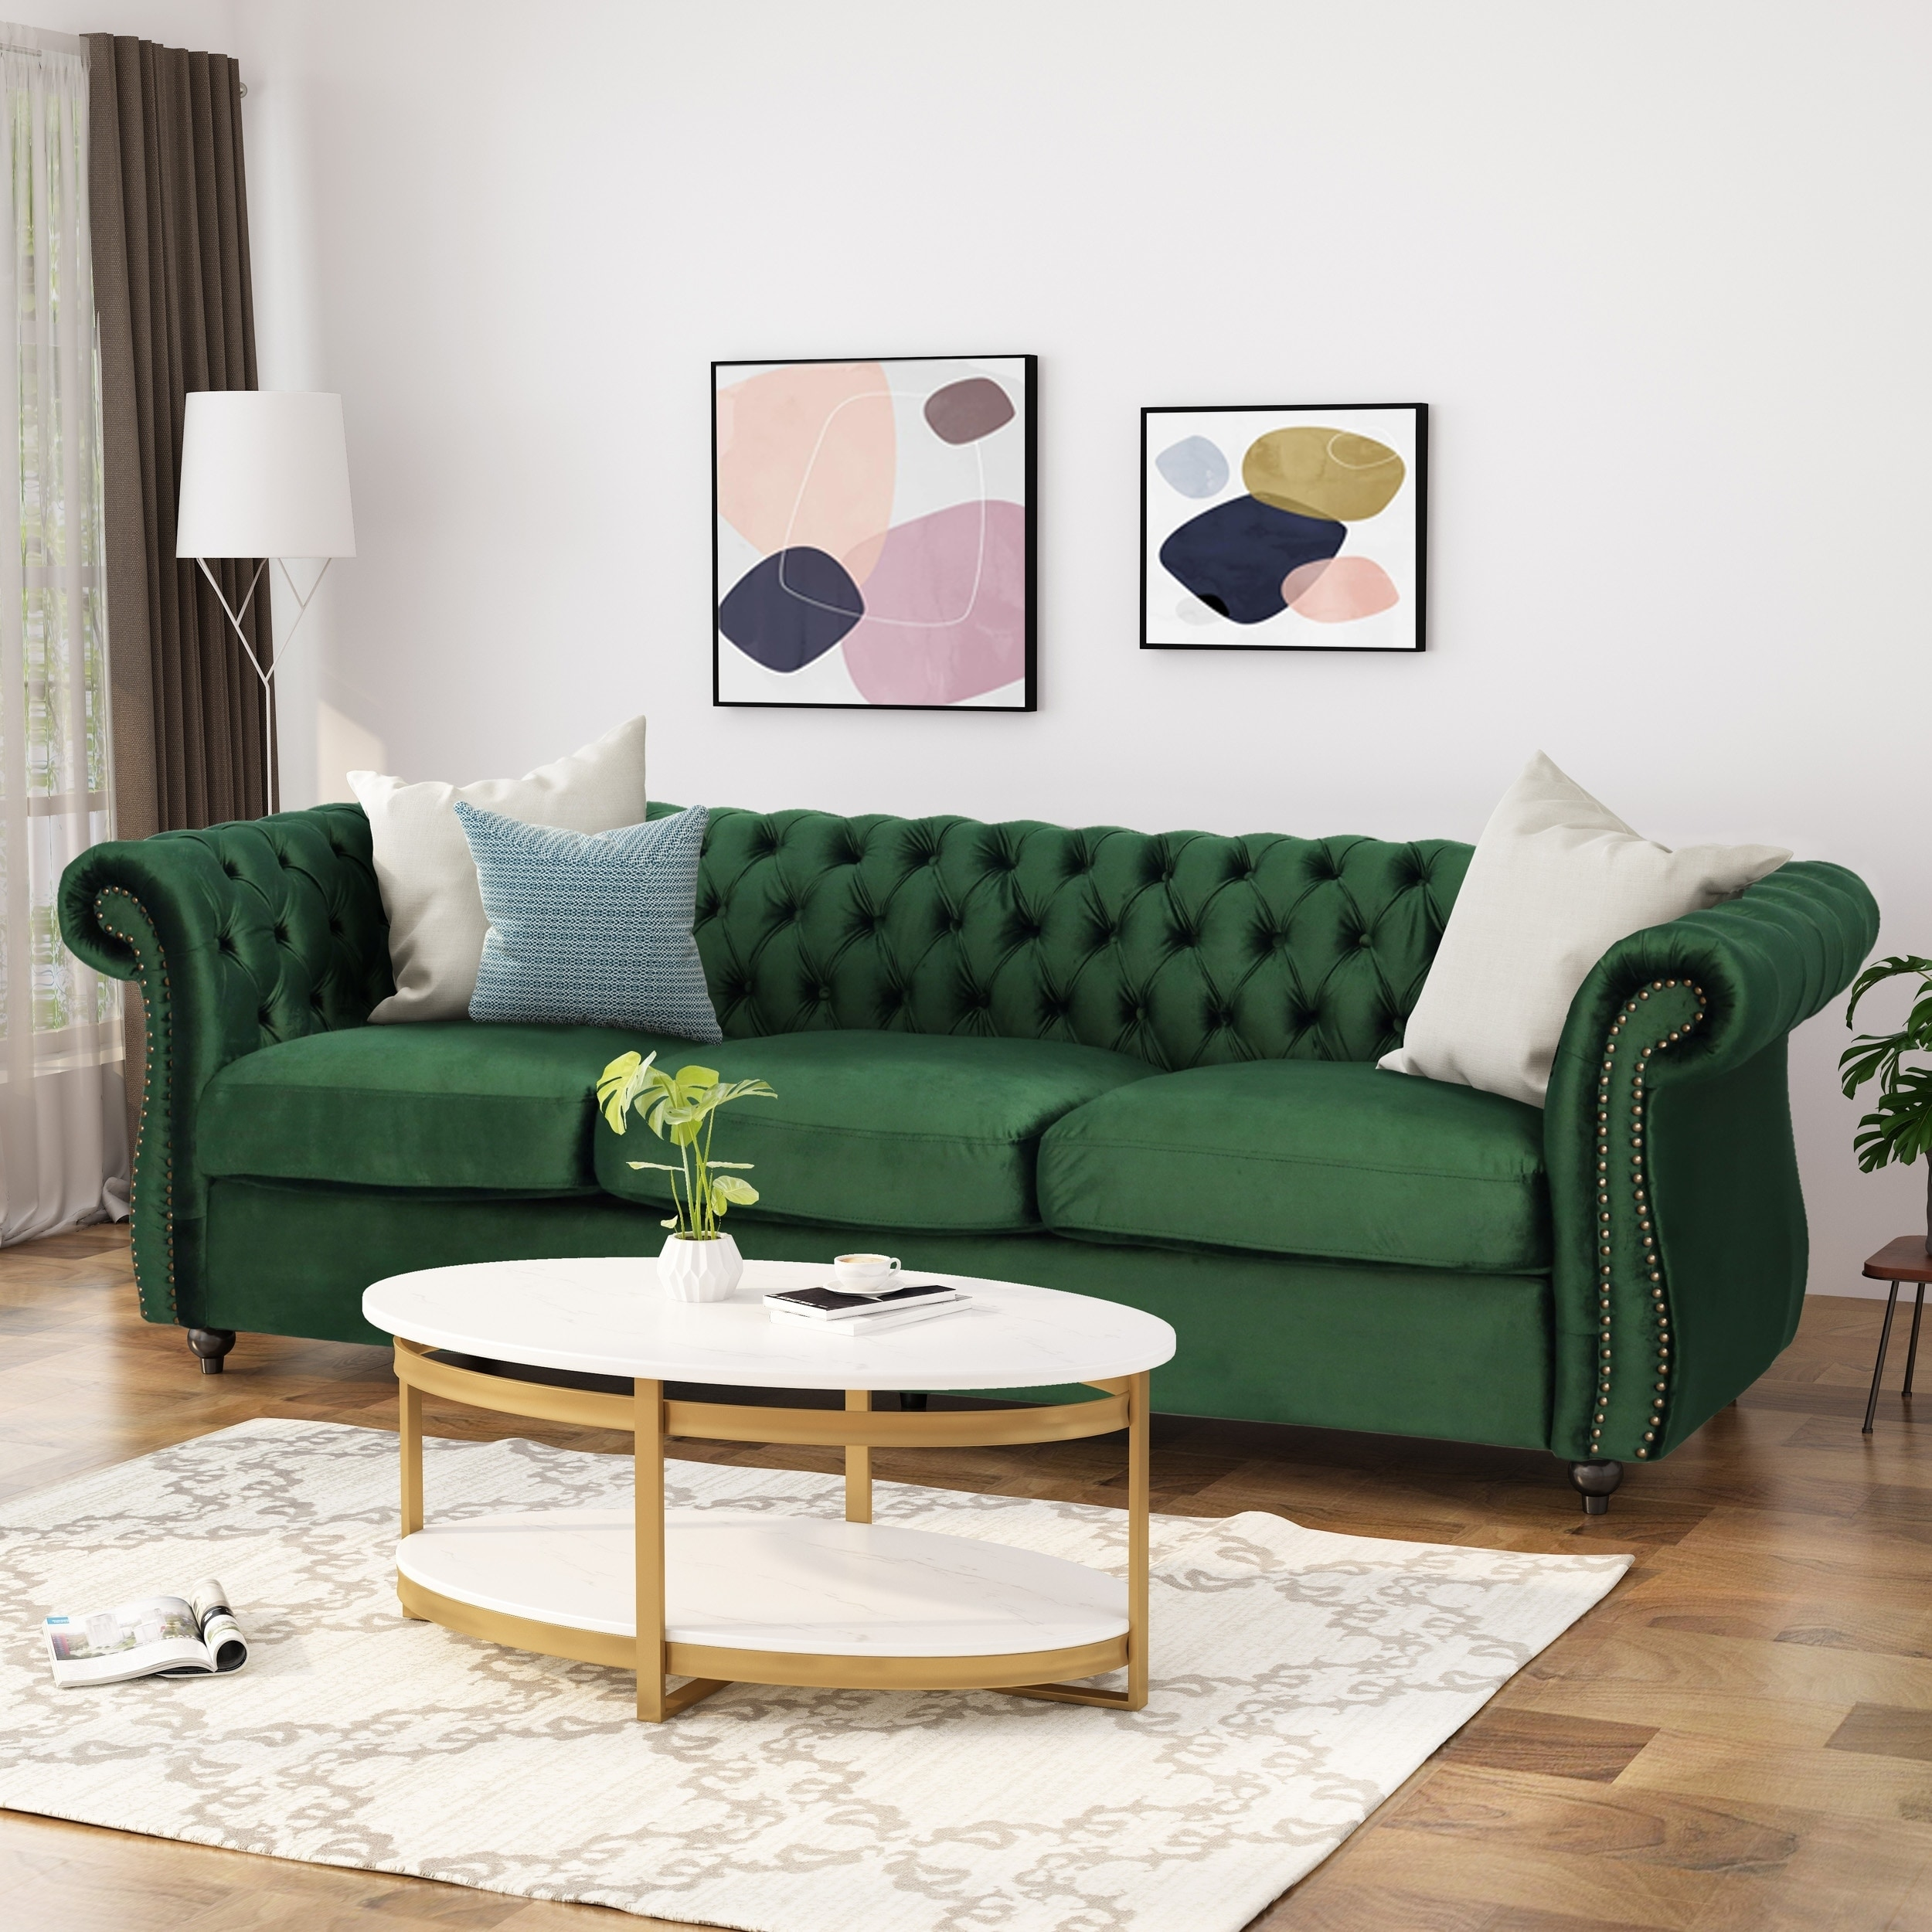 Wondrous Buy Sofas Couches Online At Overstock Our Best Living Gmtry Best Dining Table And Chair Ideas Images Gmtryco